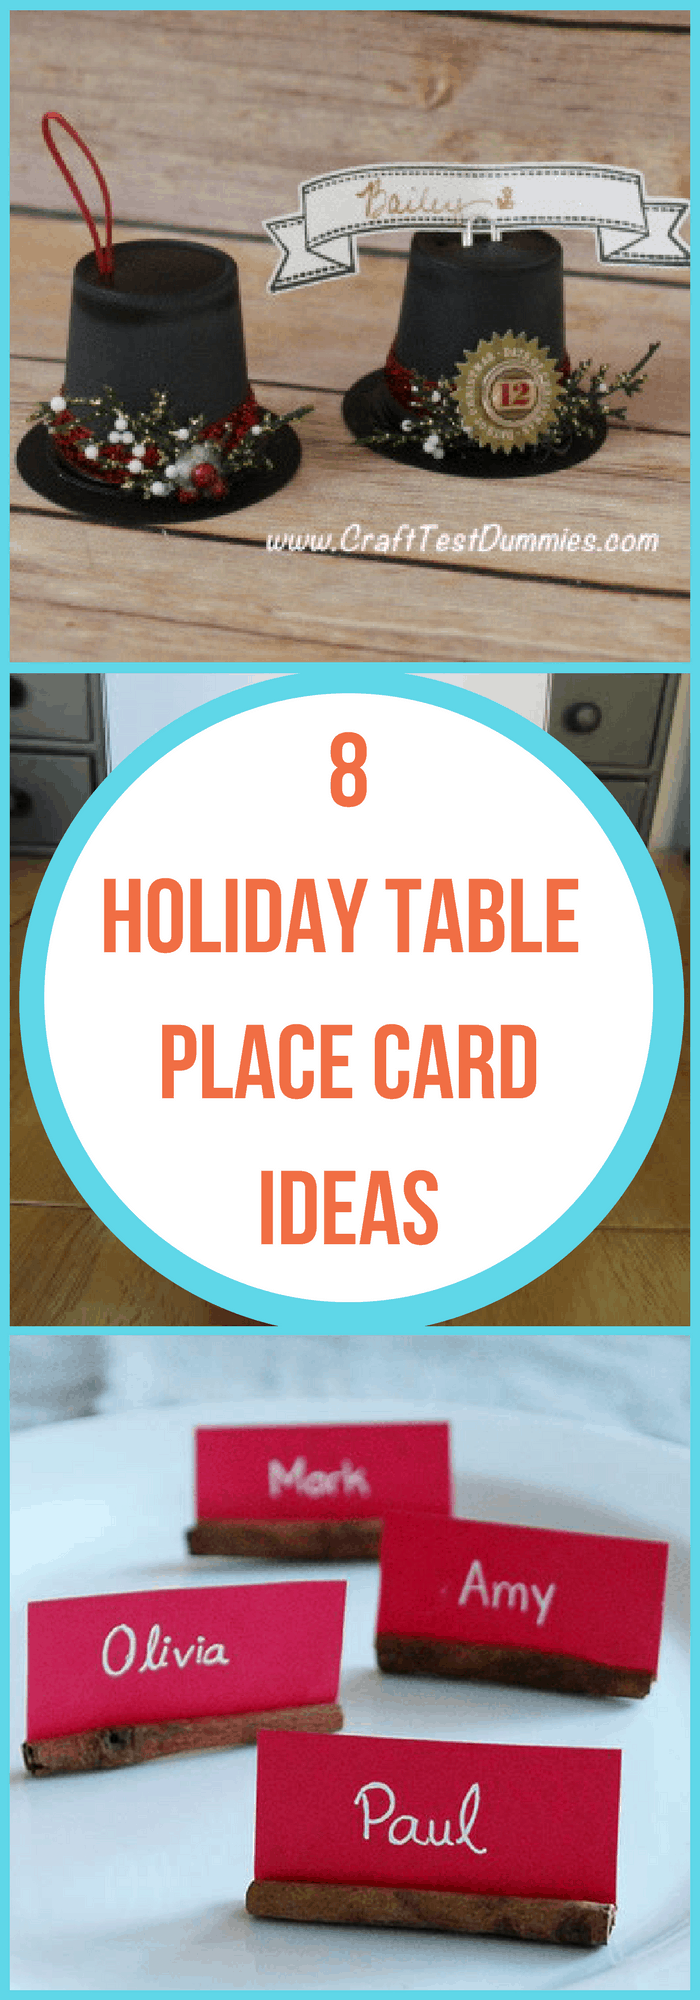 8 Holiday Table Place Card Ideas - The Organized Mom